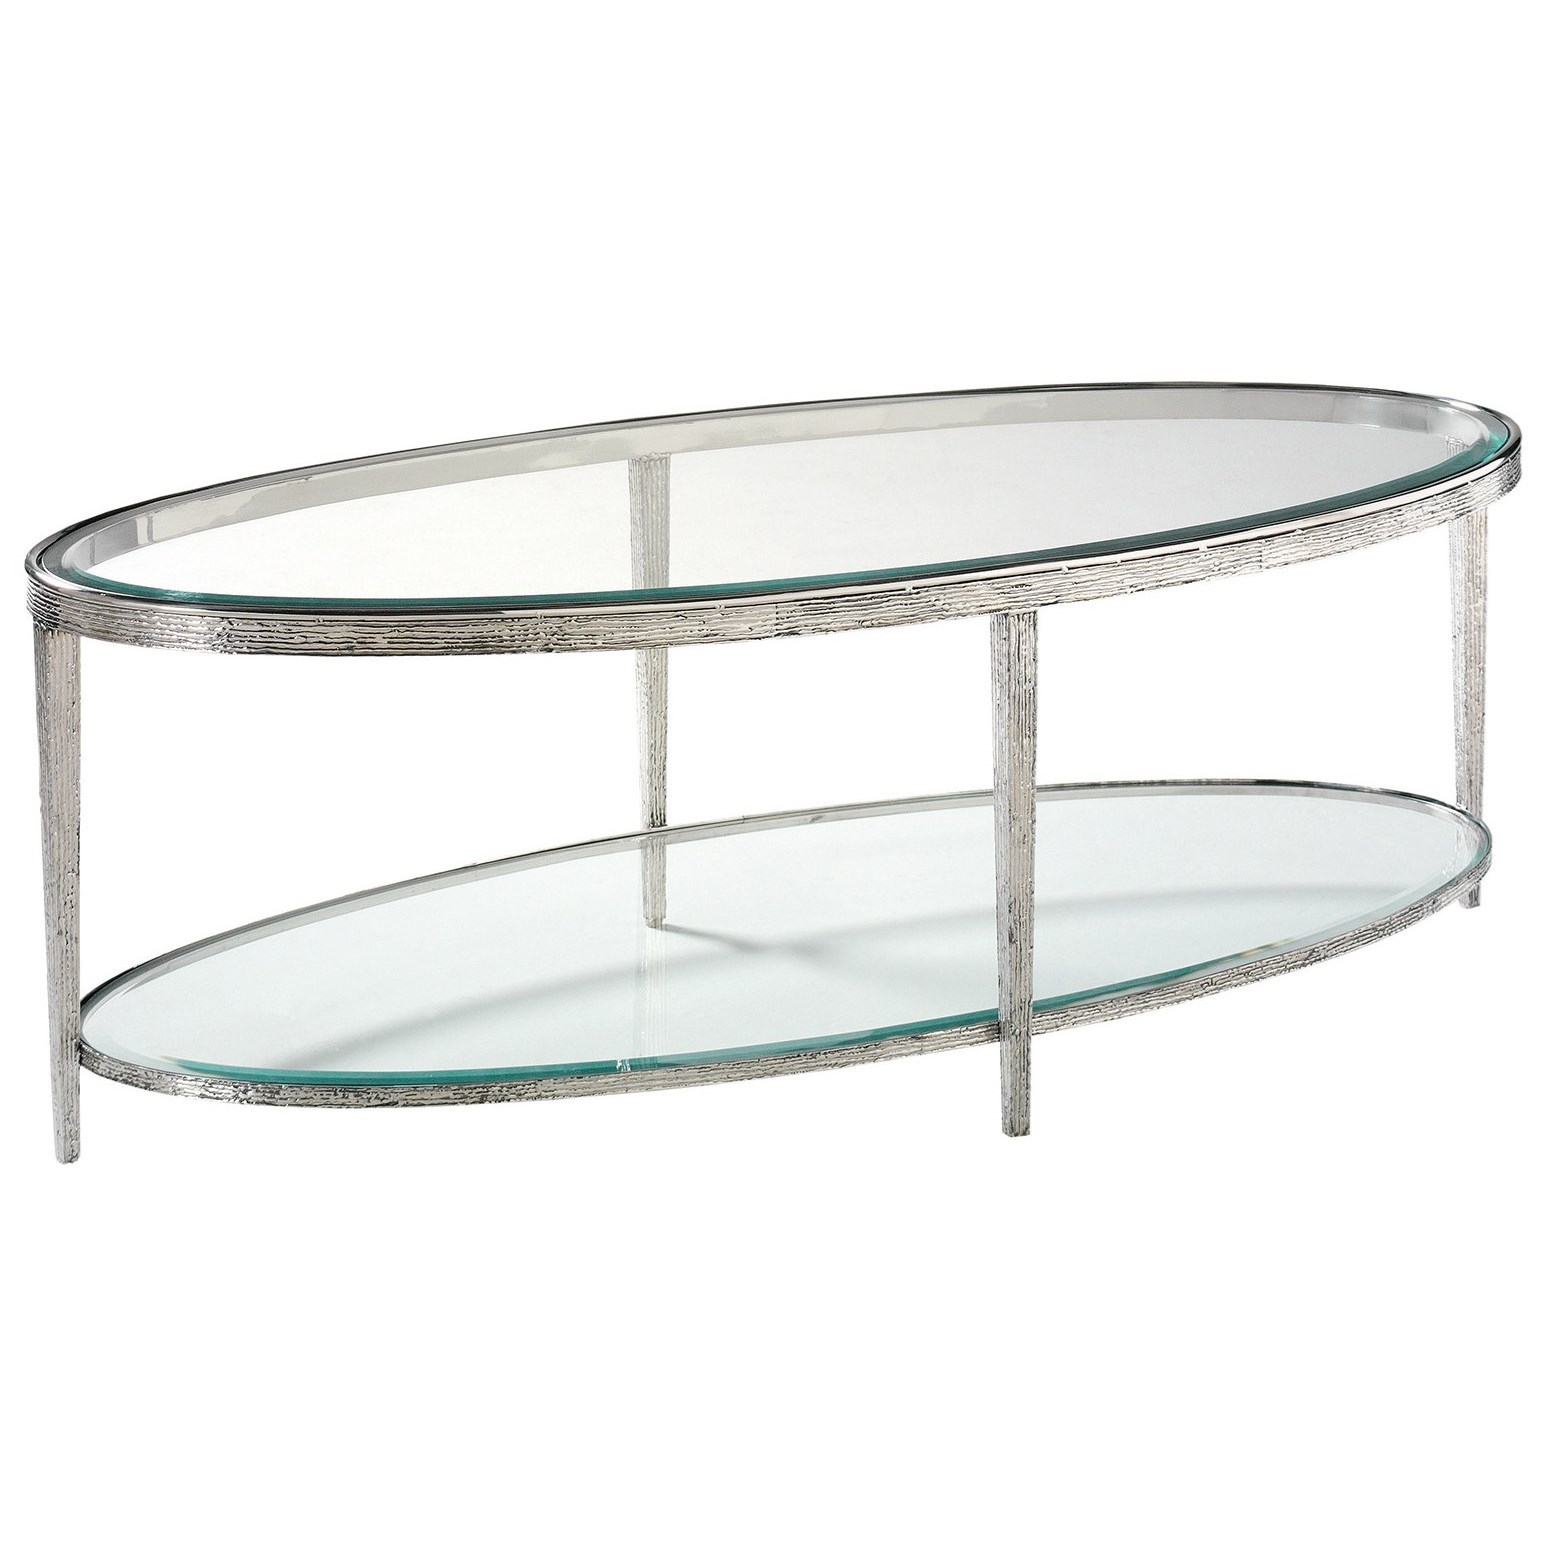 H & M Occasional Jinx Nickel Cocktail Table - Oval by Hancock & Moore at Baer's Furniture